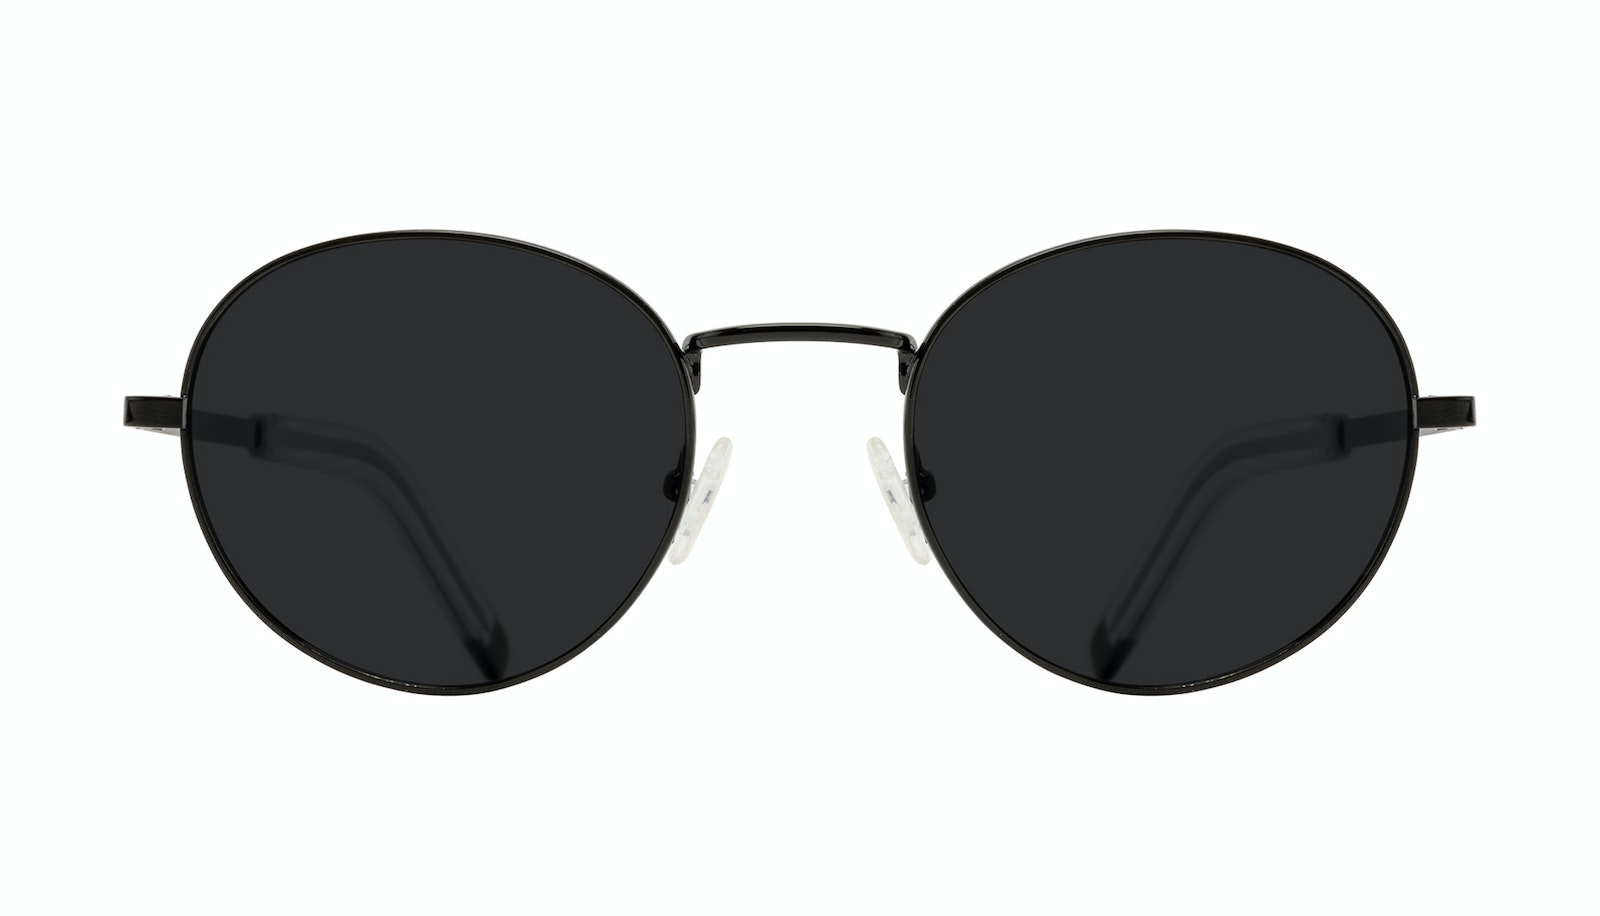 Affordable Fashion Glasses Round Sunglasses Men Lean L Black